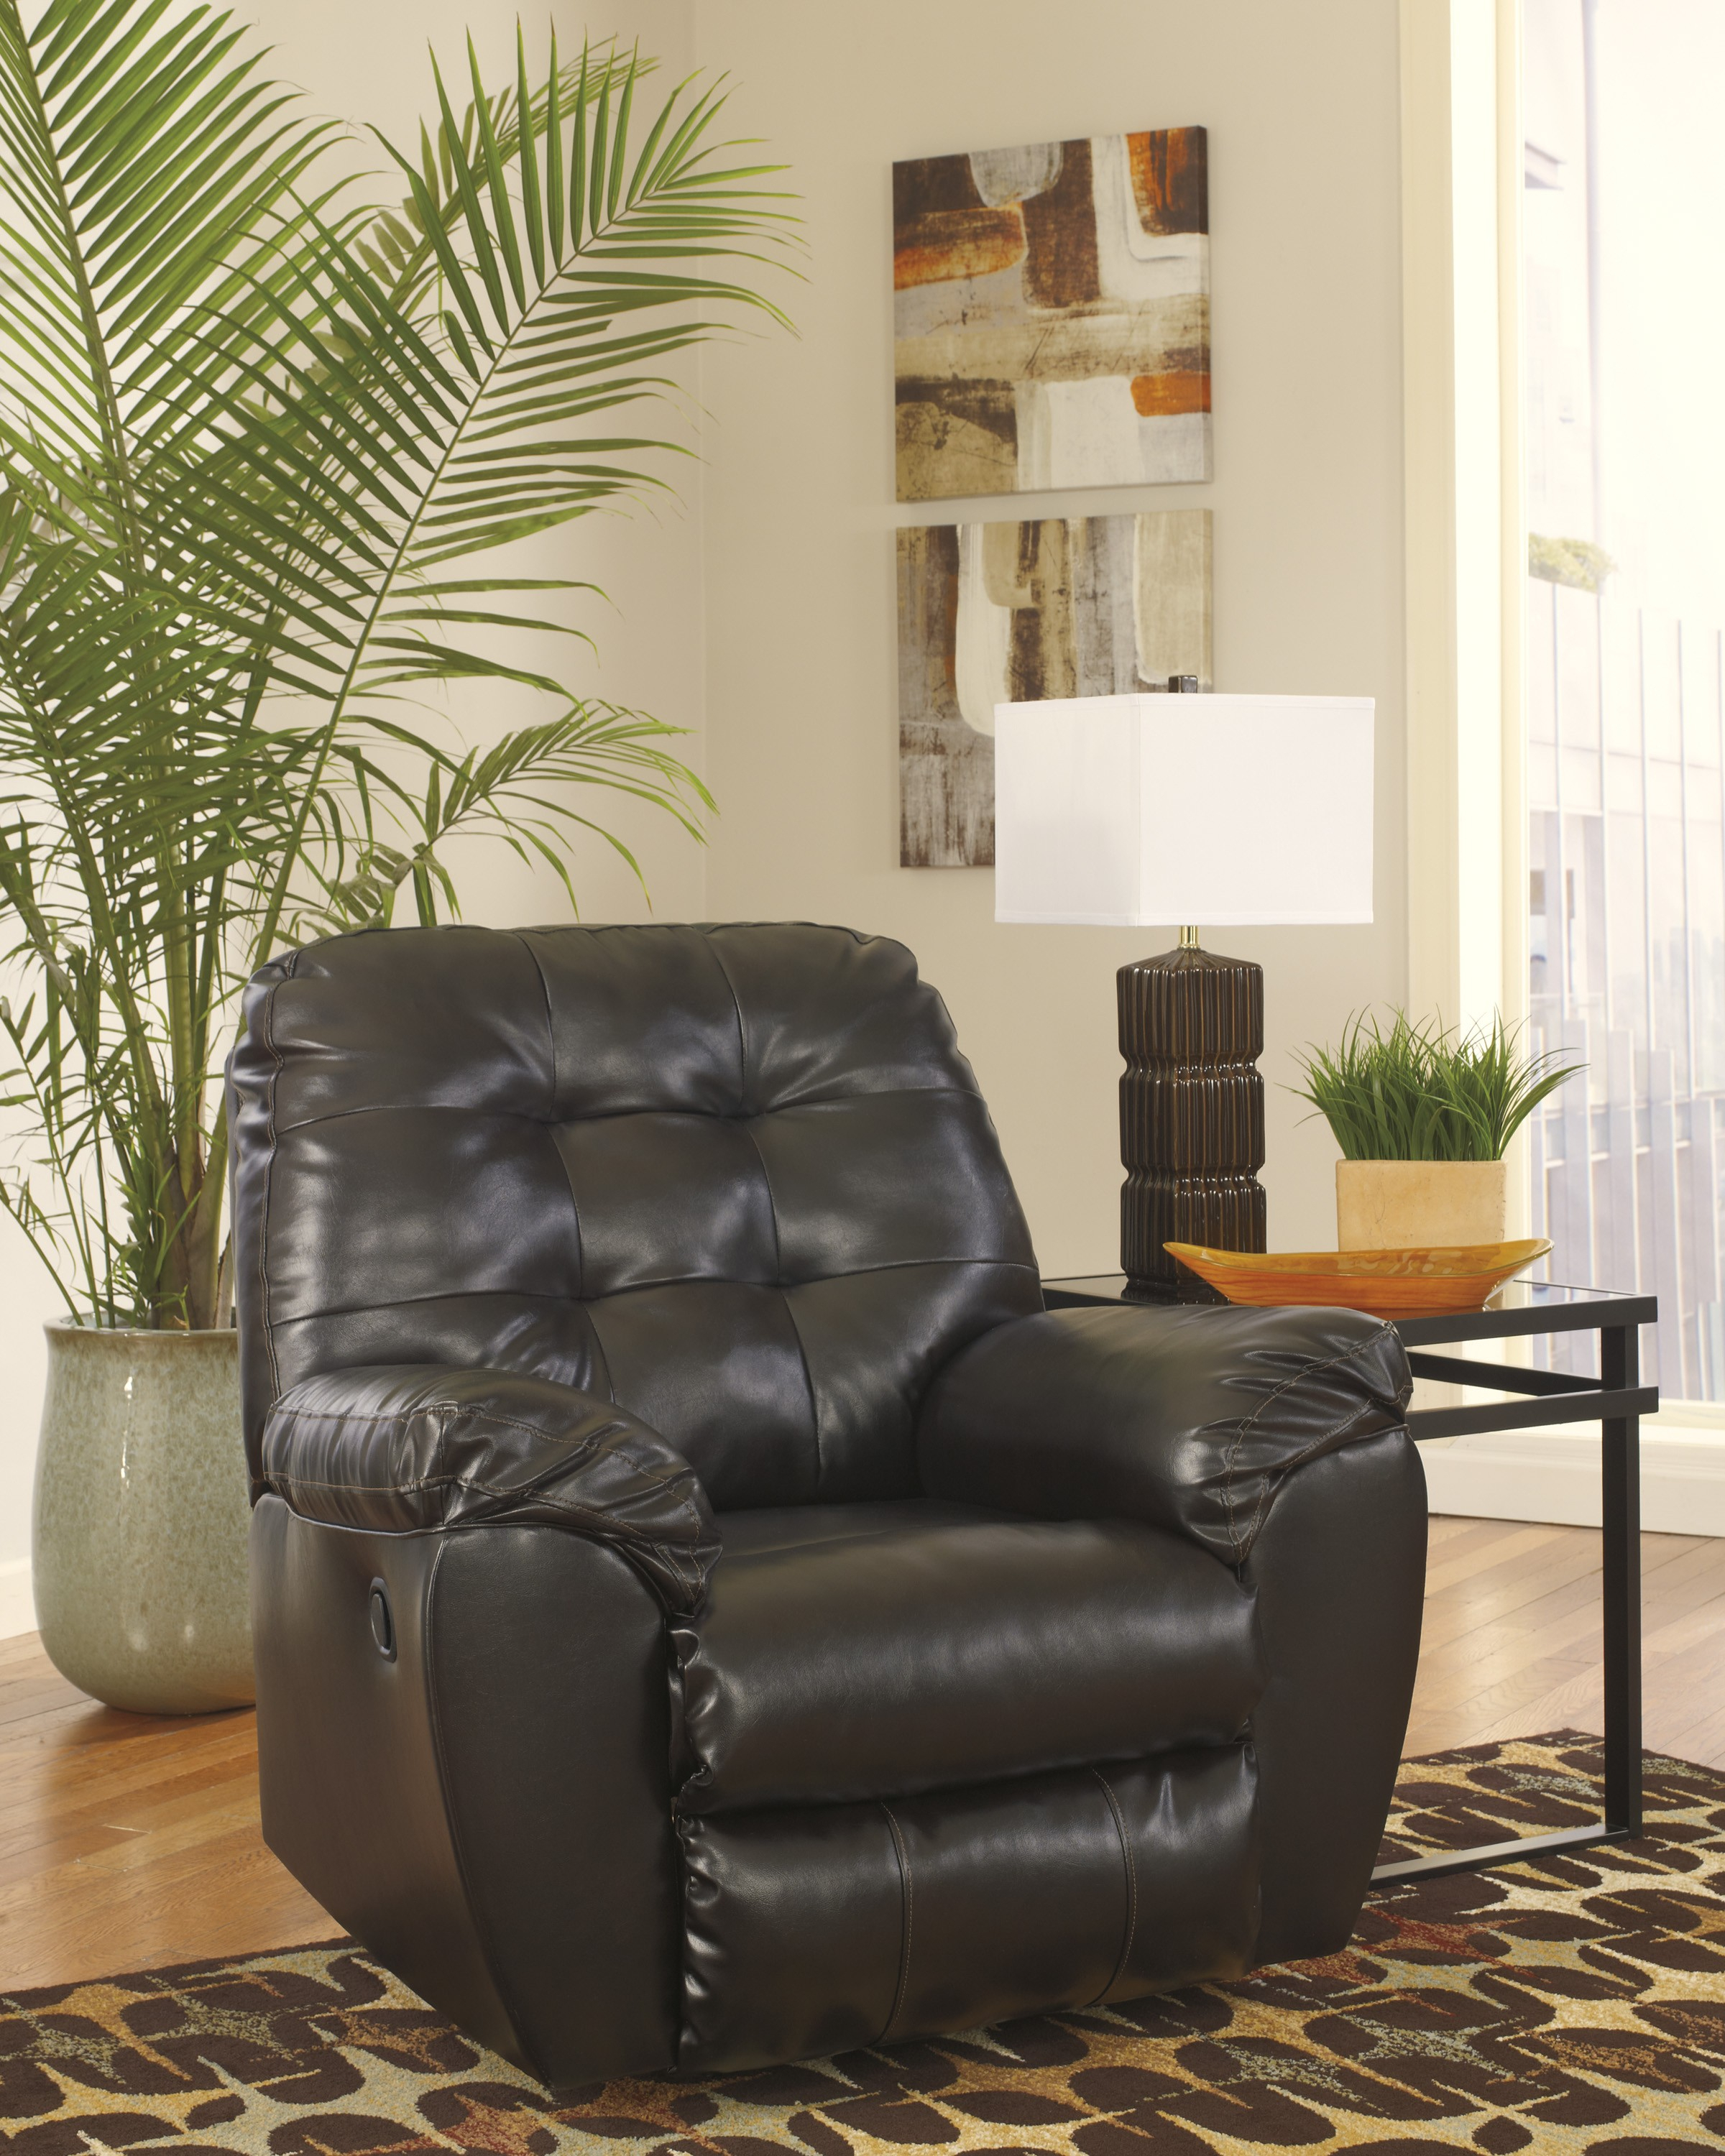 Leon Furniture | Buy Living Rooms Recliners Online, Phoenix In Hercules Oyster Swivel Glider Recliners (View 15 of 25)